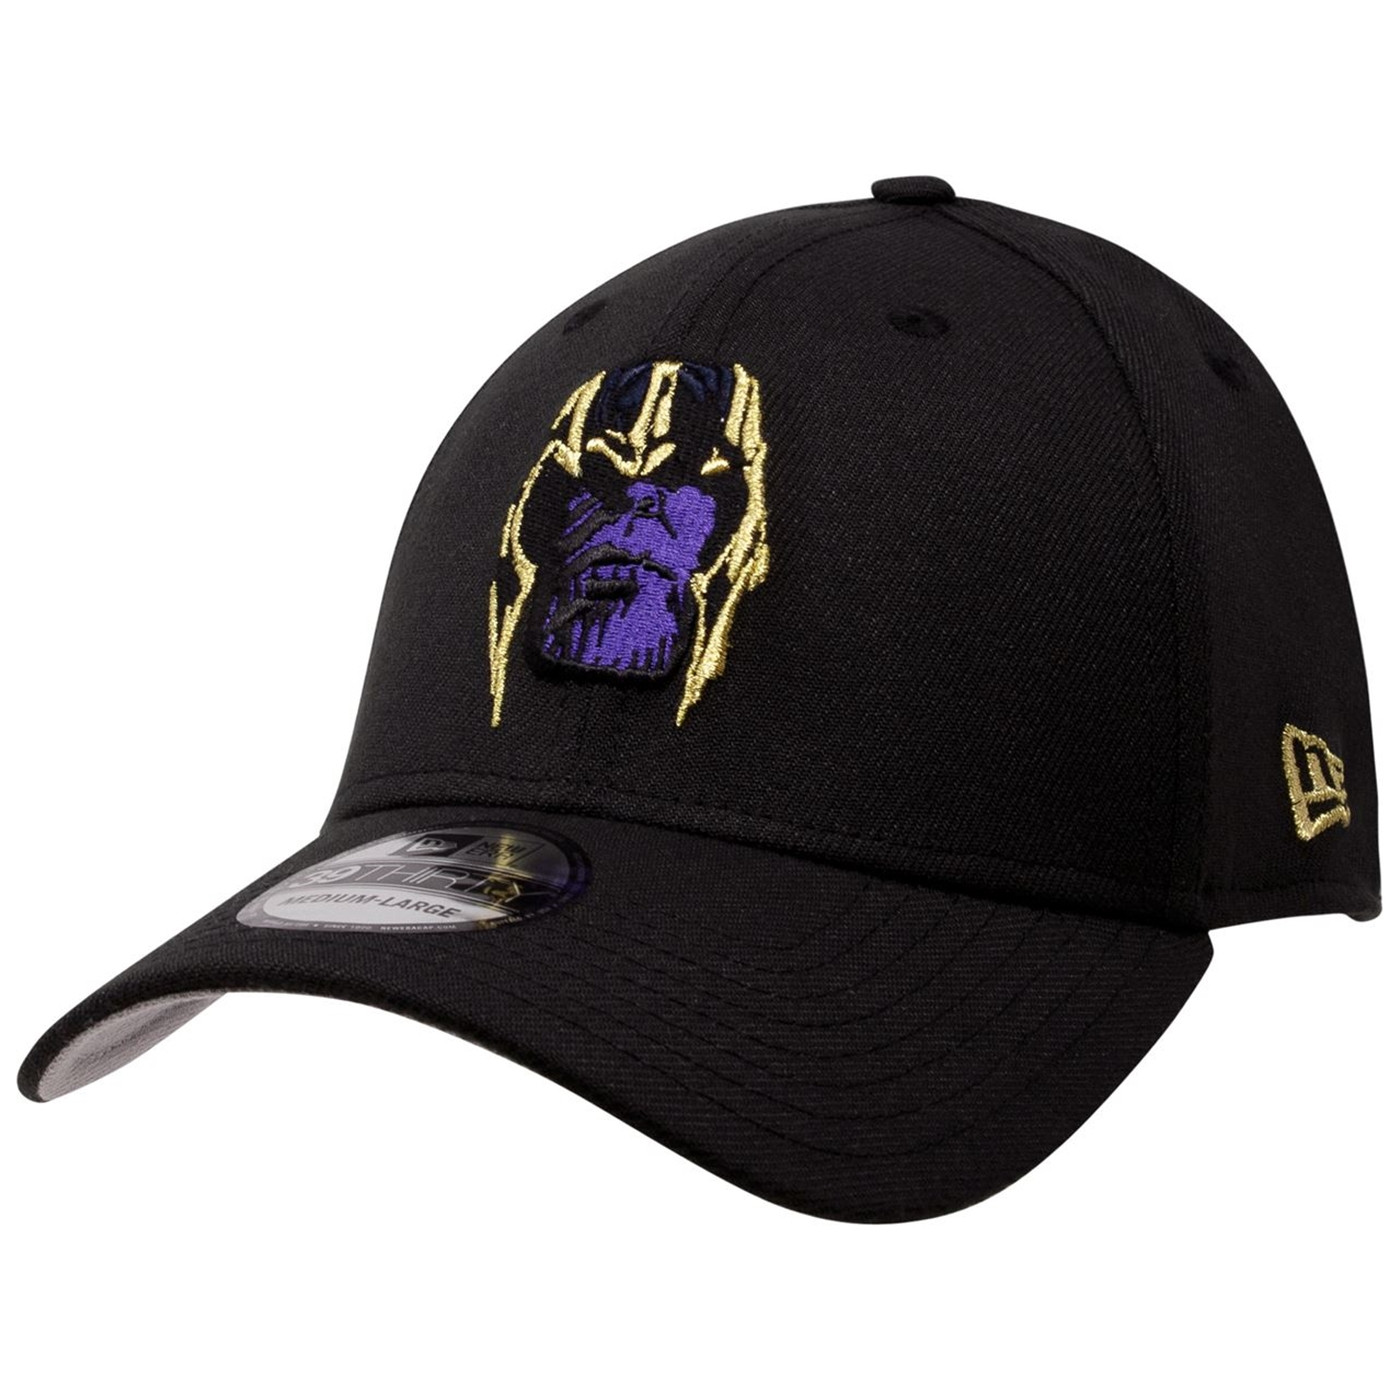 Avengers Endgame Movie Thanos Armored 39Thirty Fitted Hat